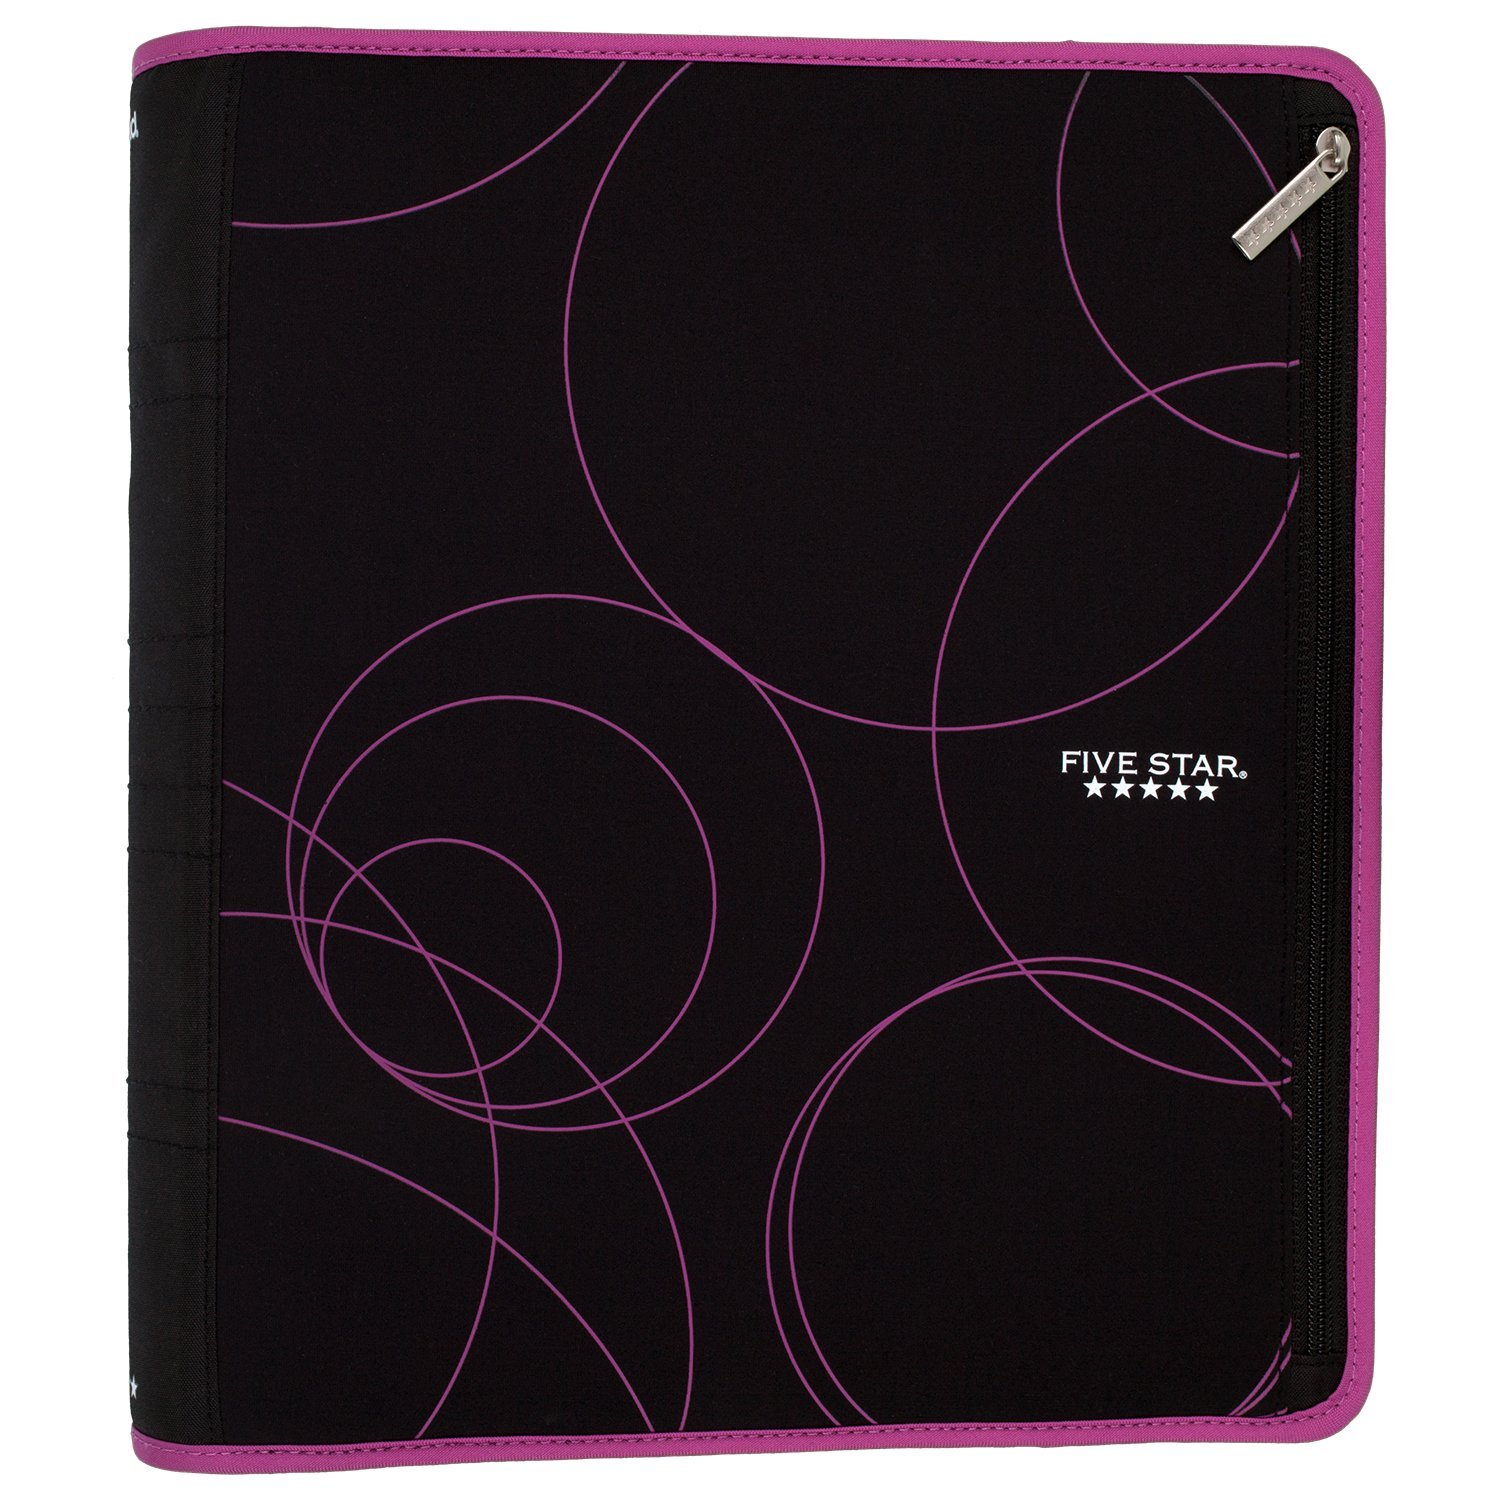 Five Star 2 Inch Zipper Binder, Ring Binder, Xpanz, Assorted Colors (29040) by Five Star (Image #10)